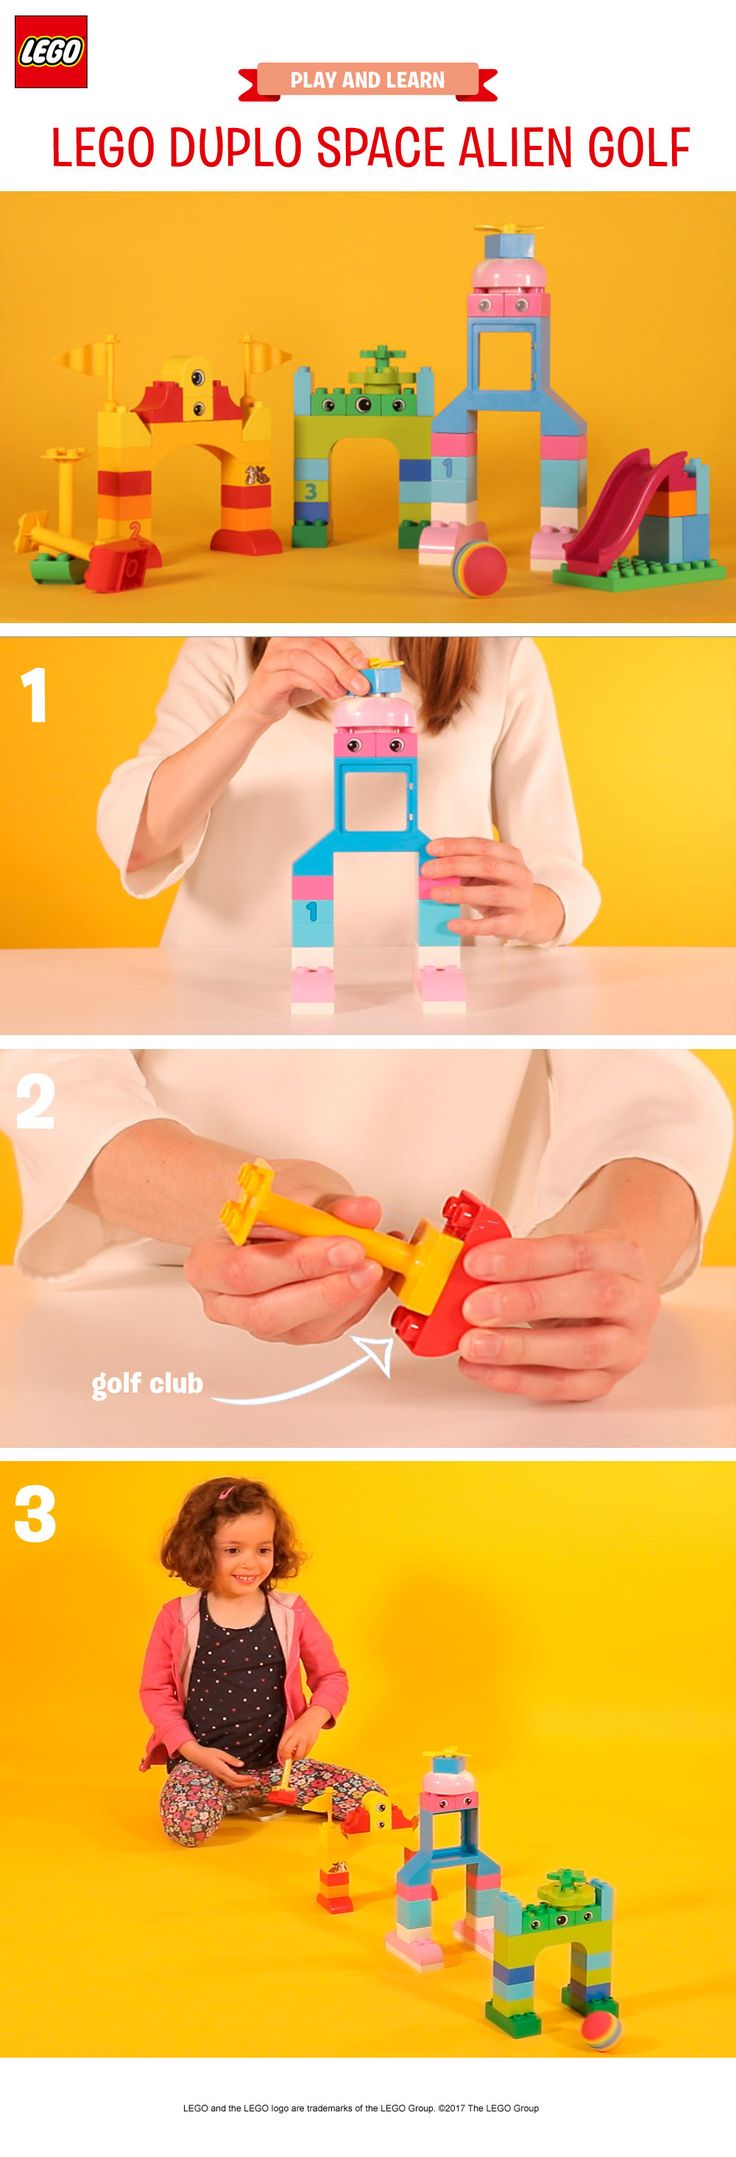 This is a great indoor activity for young children, combining gross and fine motor skills. Help your child build funny looking aliens out of LEGO DUPLO bricks – these will make the arches that the ball will roll through. Make a little golf club from the bricks – or use a paper towel tube. Then, use a ping pong ball (or any large ball that's safe for pre-schoolers to play with) and see if your child can get it through all the arches. Extra points for getting them in first time!